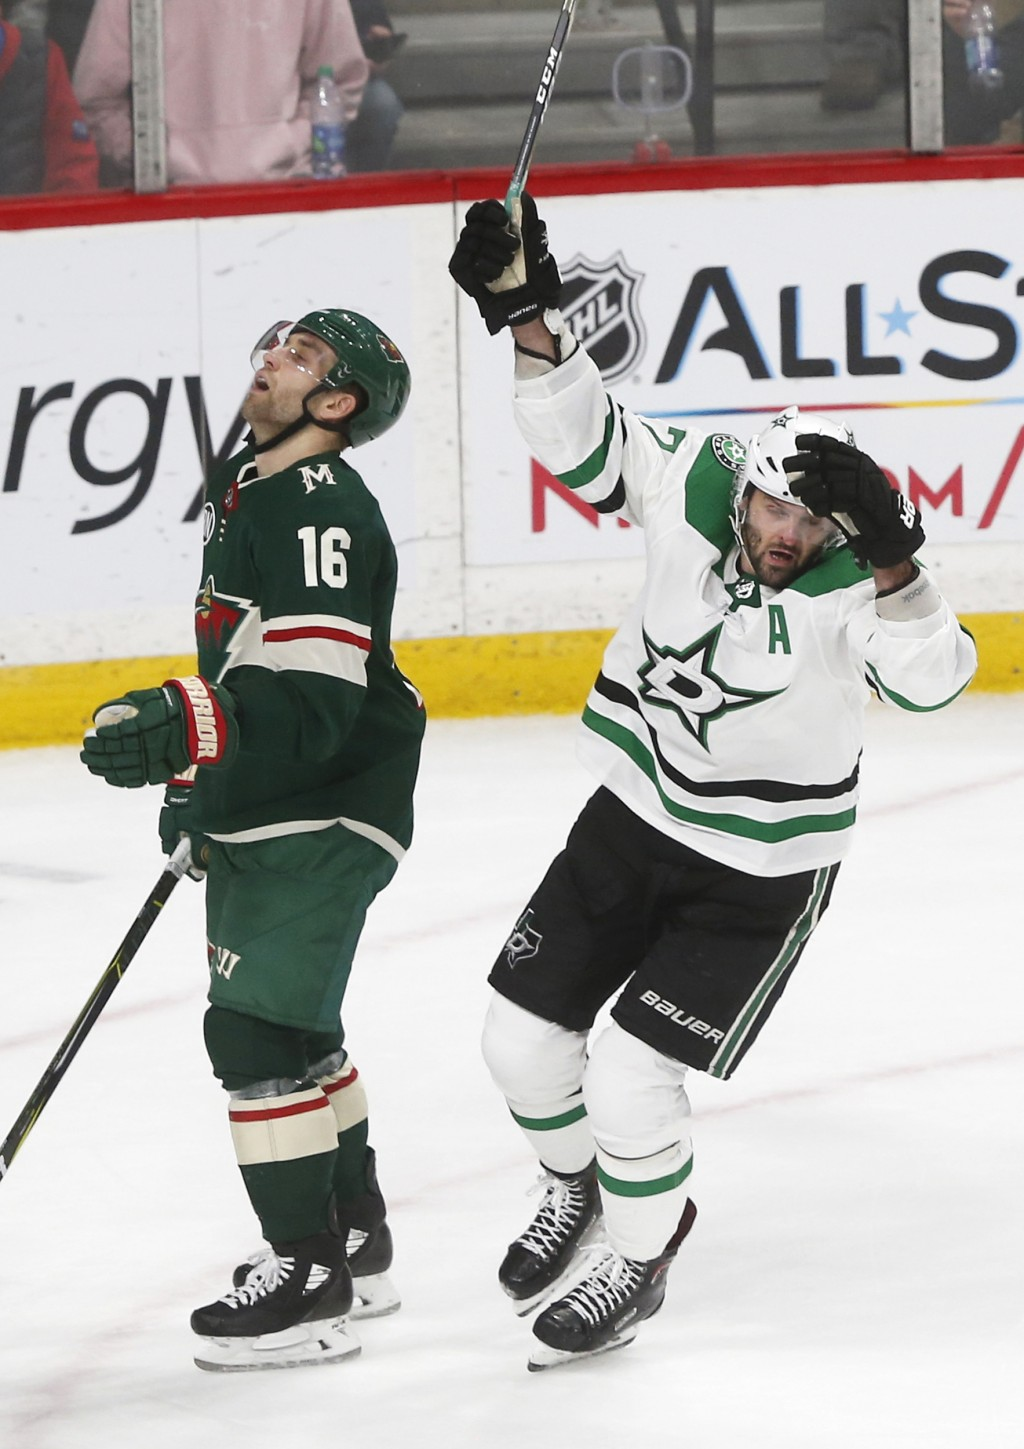 Dallas Stars' Alexander Radulov, right, of Russia, celebrates his game-winning goal in overtime as Minnesota Wild's Jason Zucker reacts in an NHL hock...